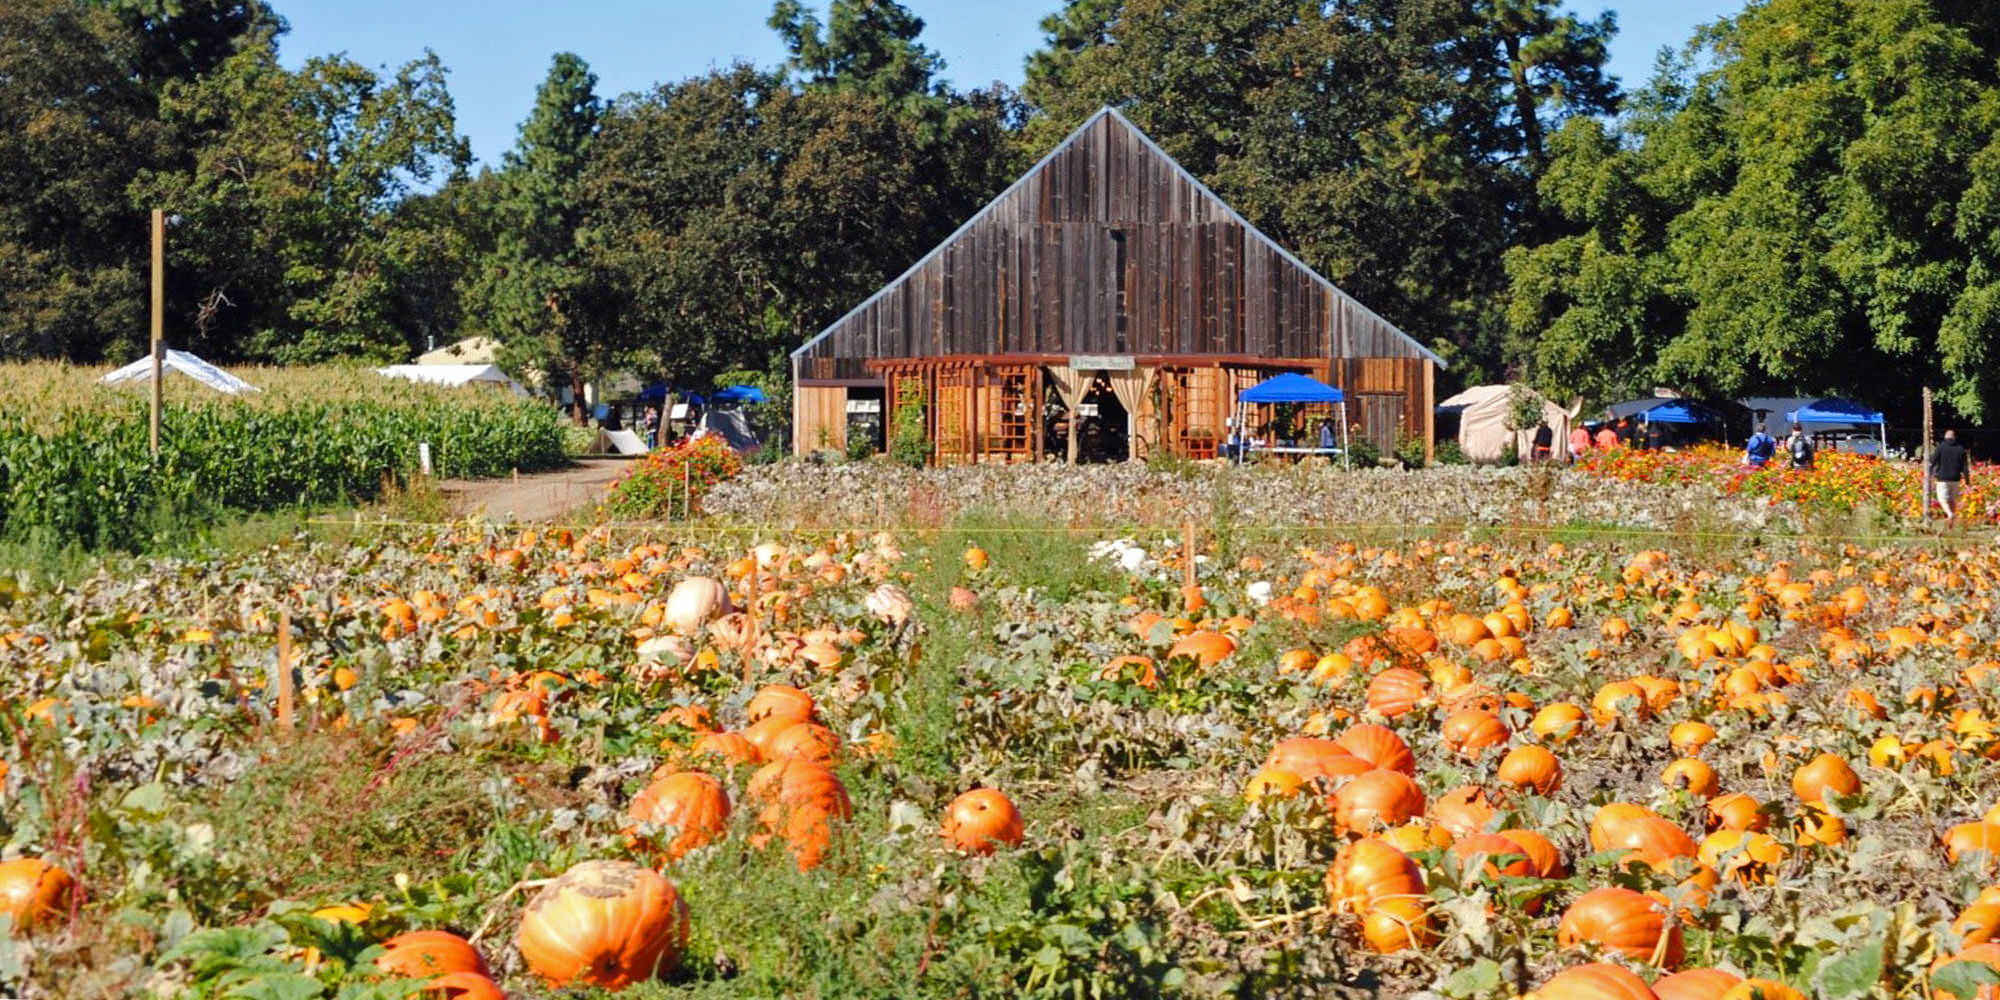 Dozens of pumpkins look ready for picking in a quaint farm field.